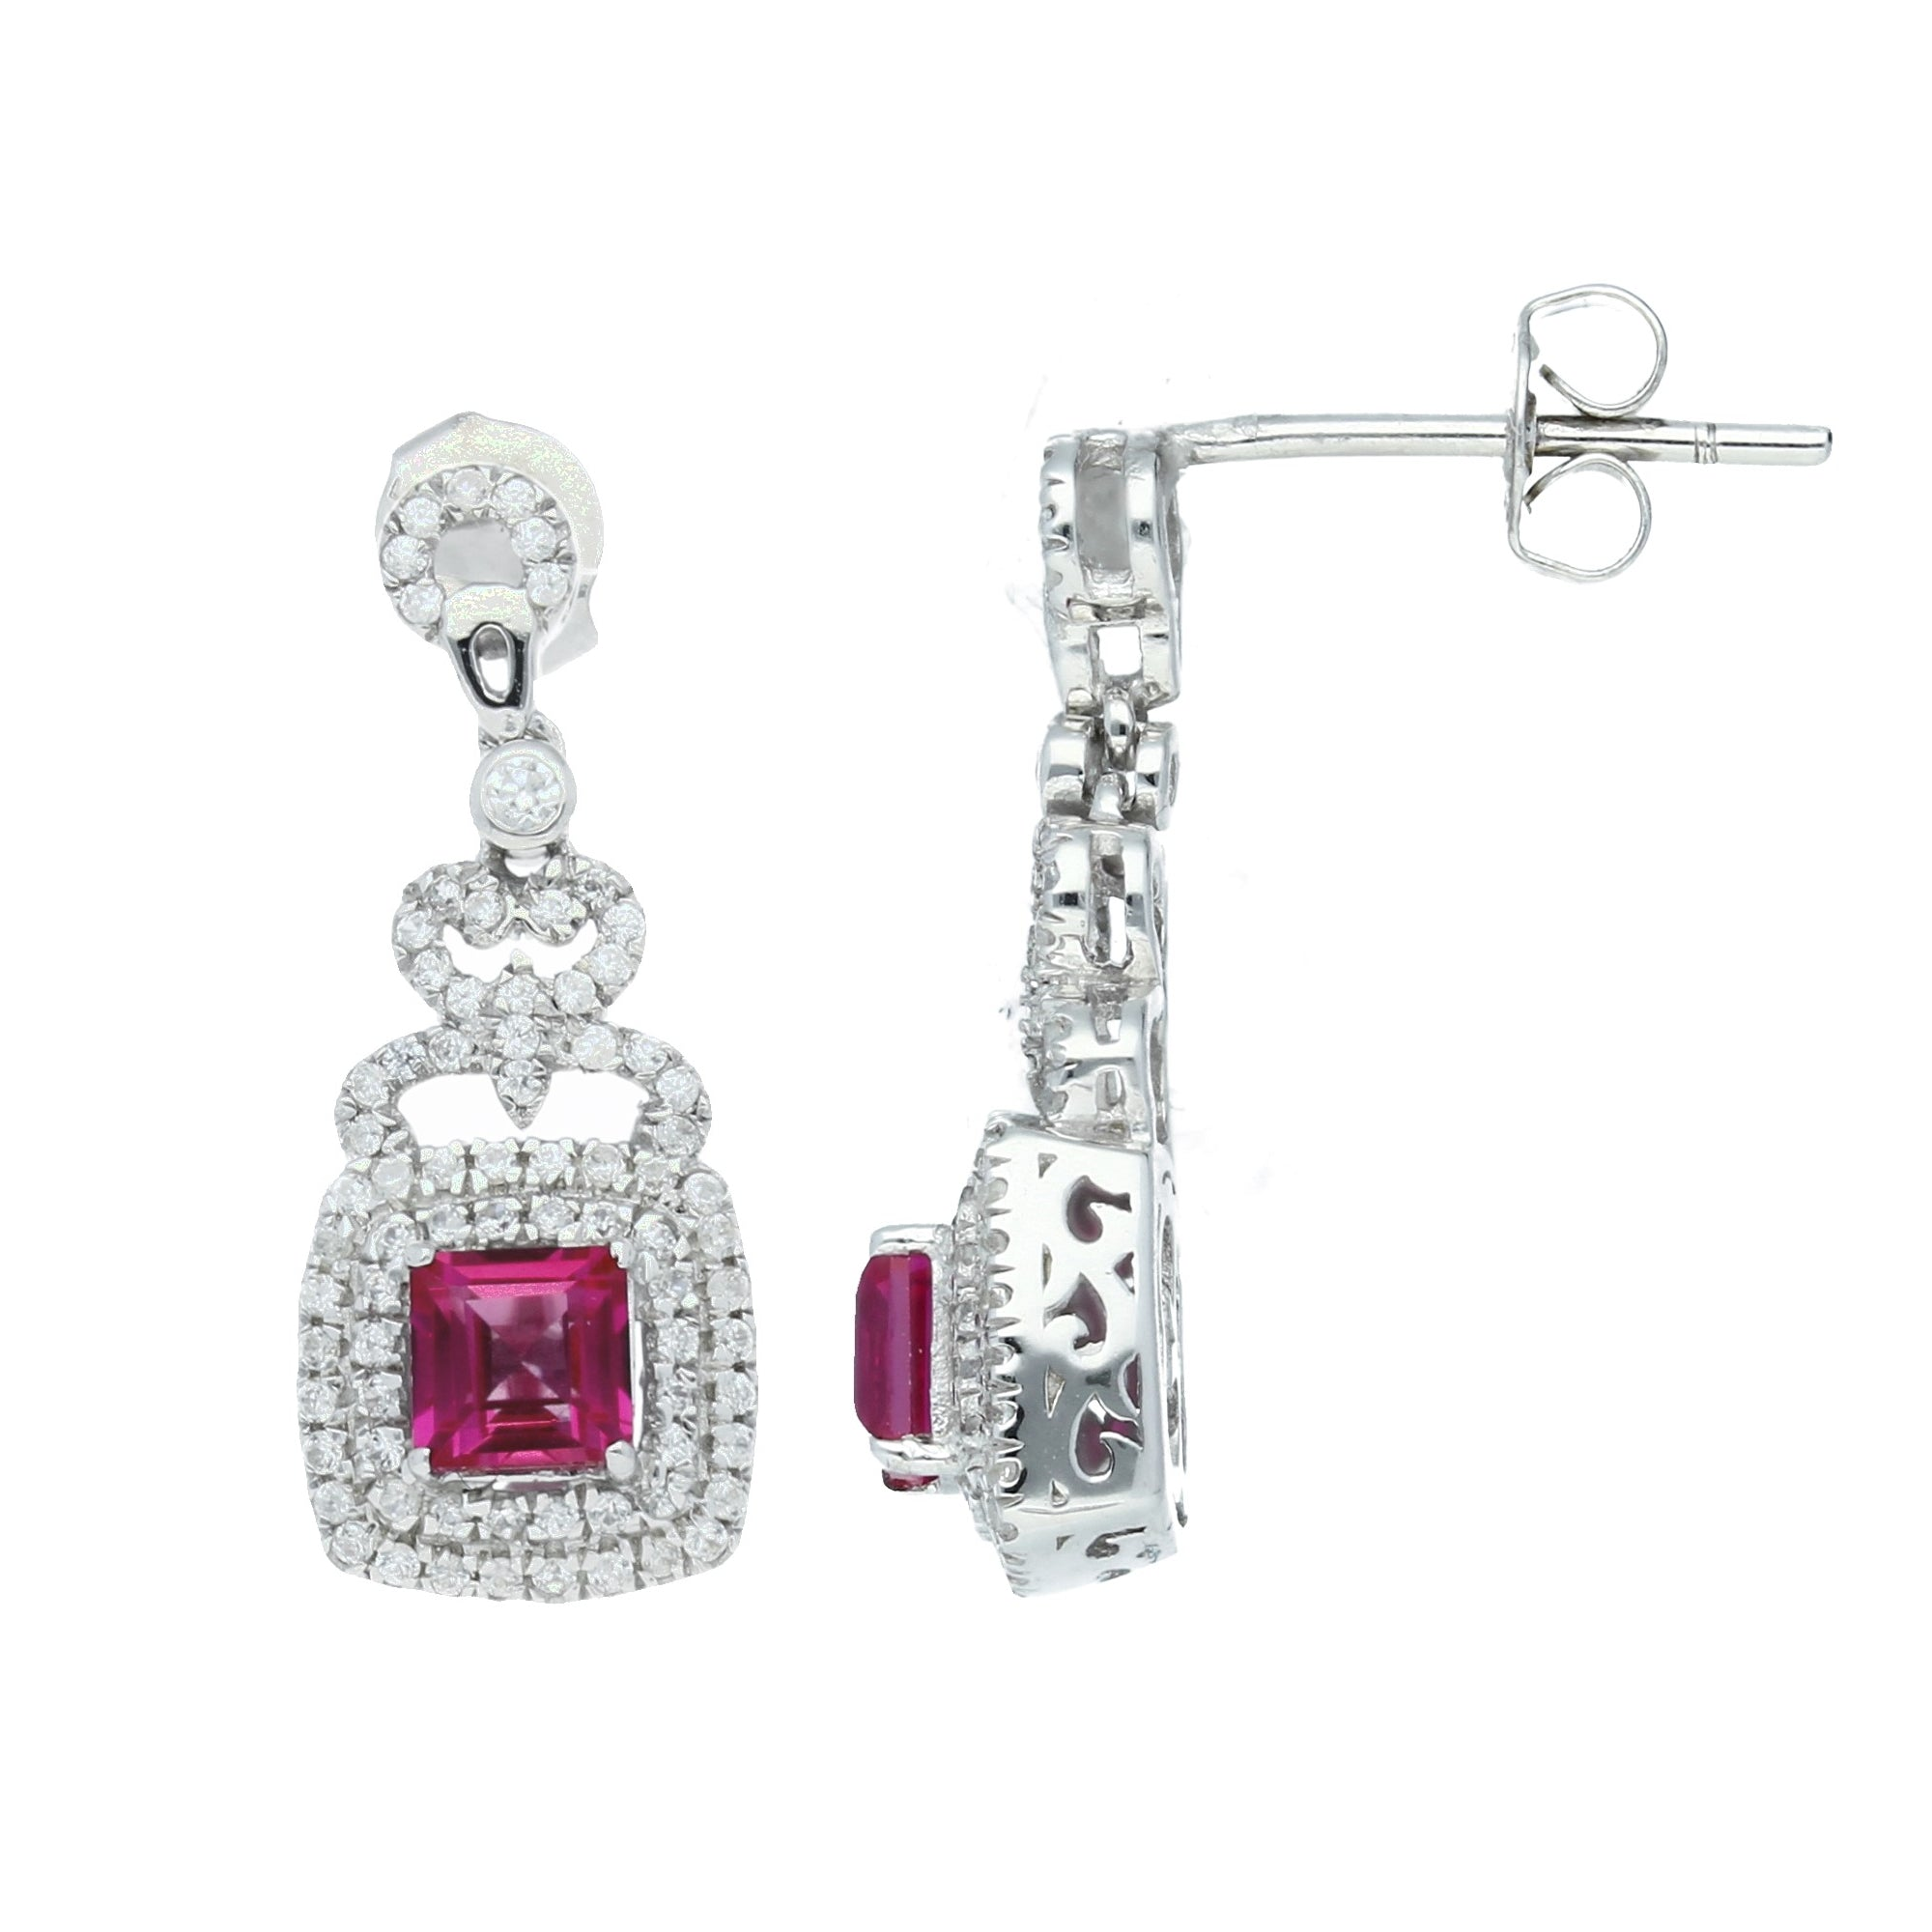 Elegant Sterling Silver Square Shaped Ruby CZ Pendant-Earrings Set - Artsyjewels